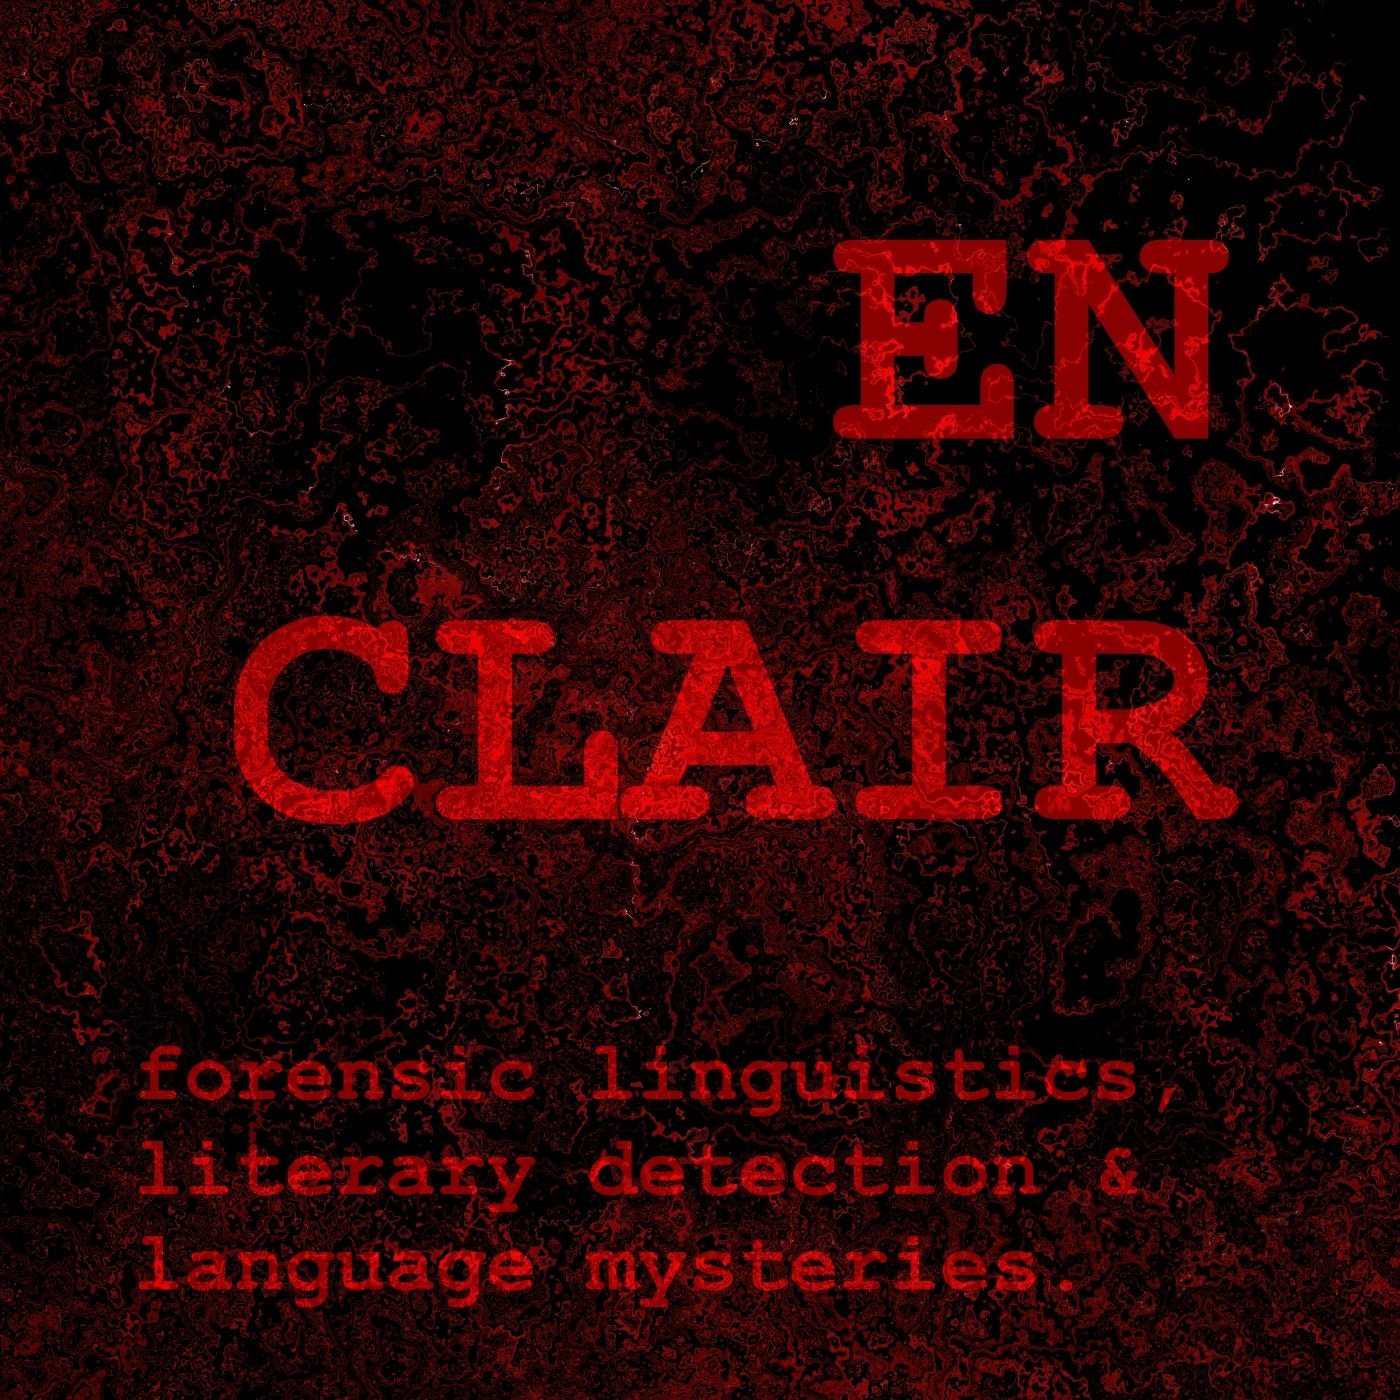 en clair: forensic linguistics, literary detection, language mysteries, and more